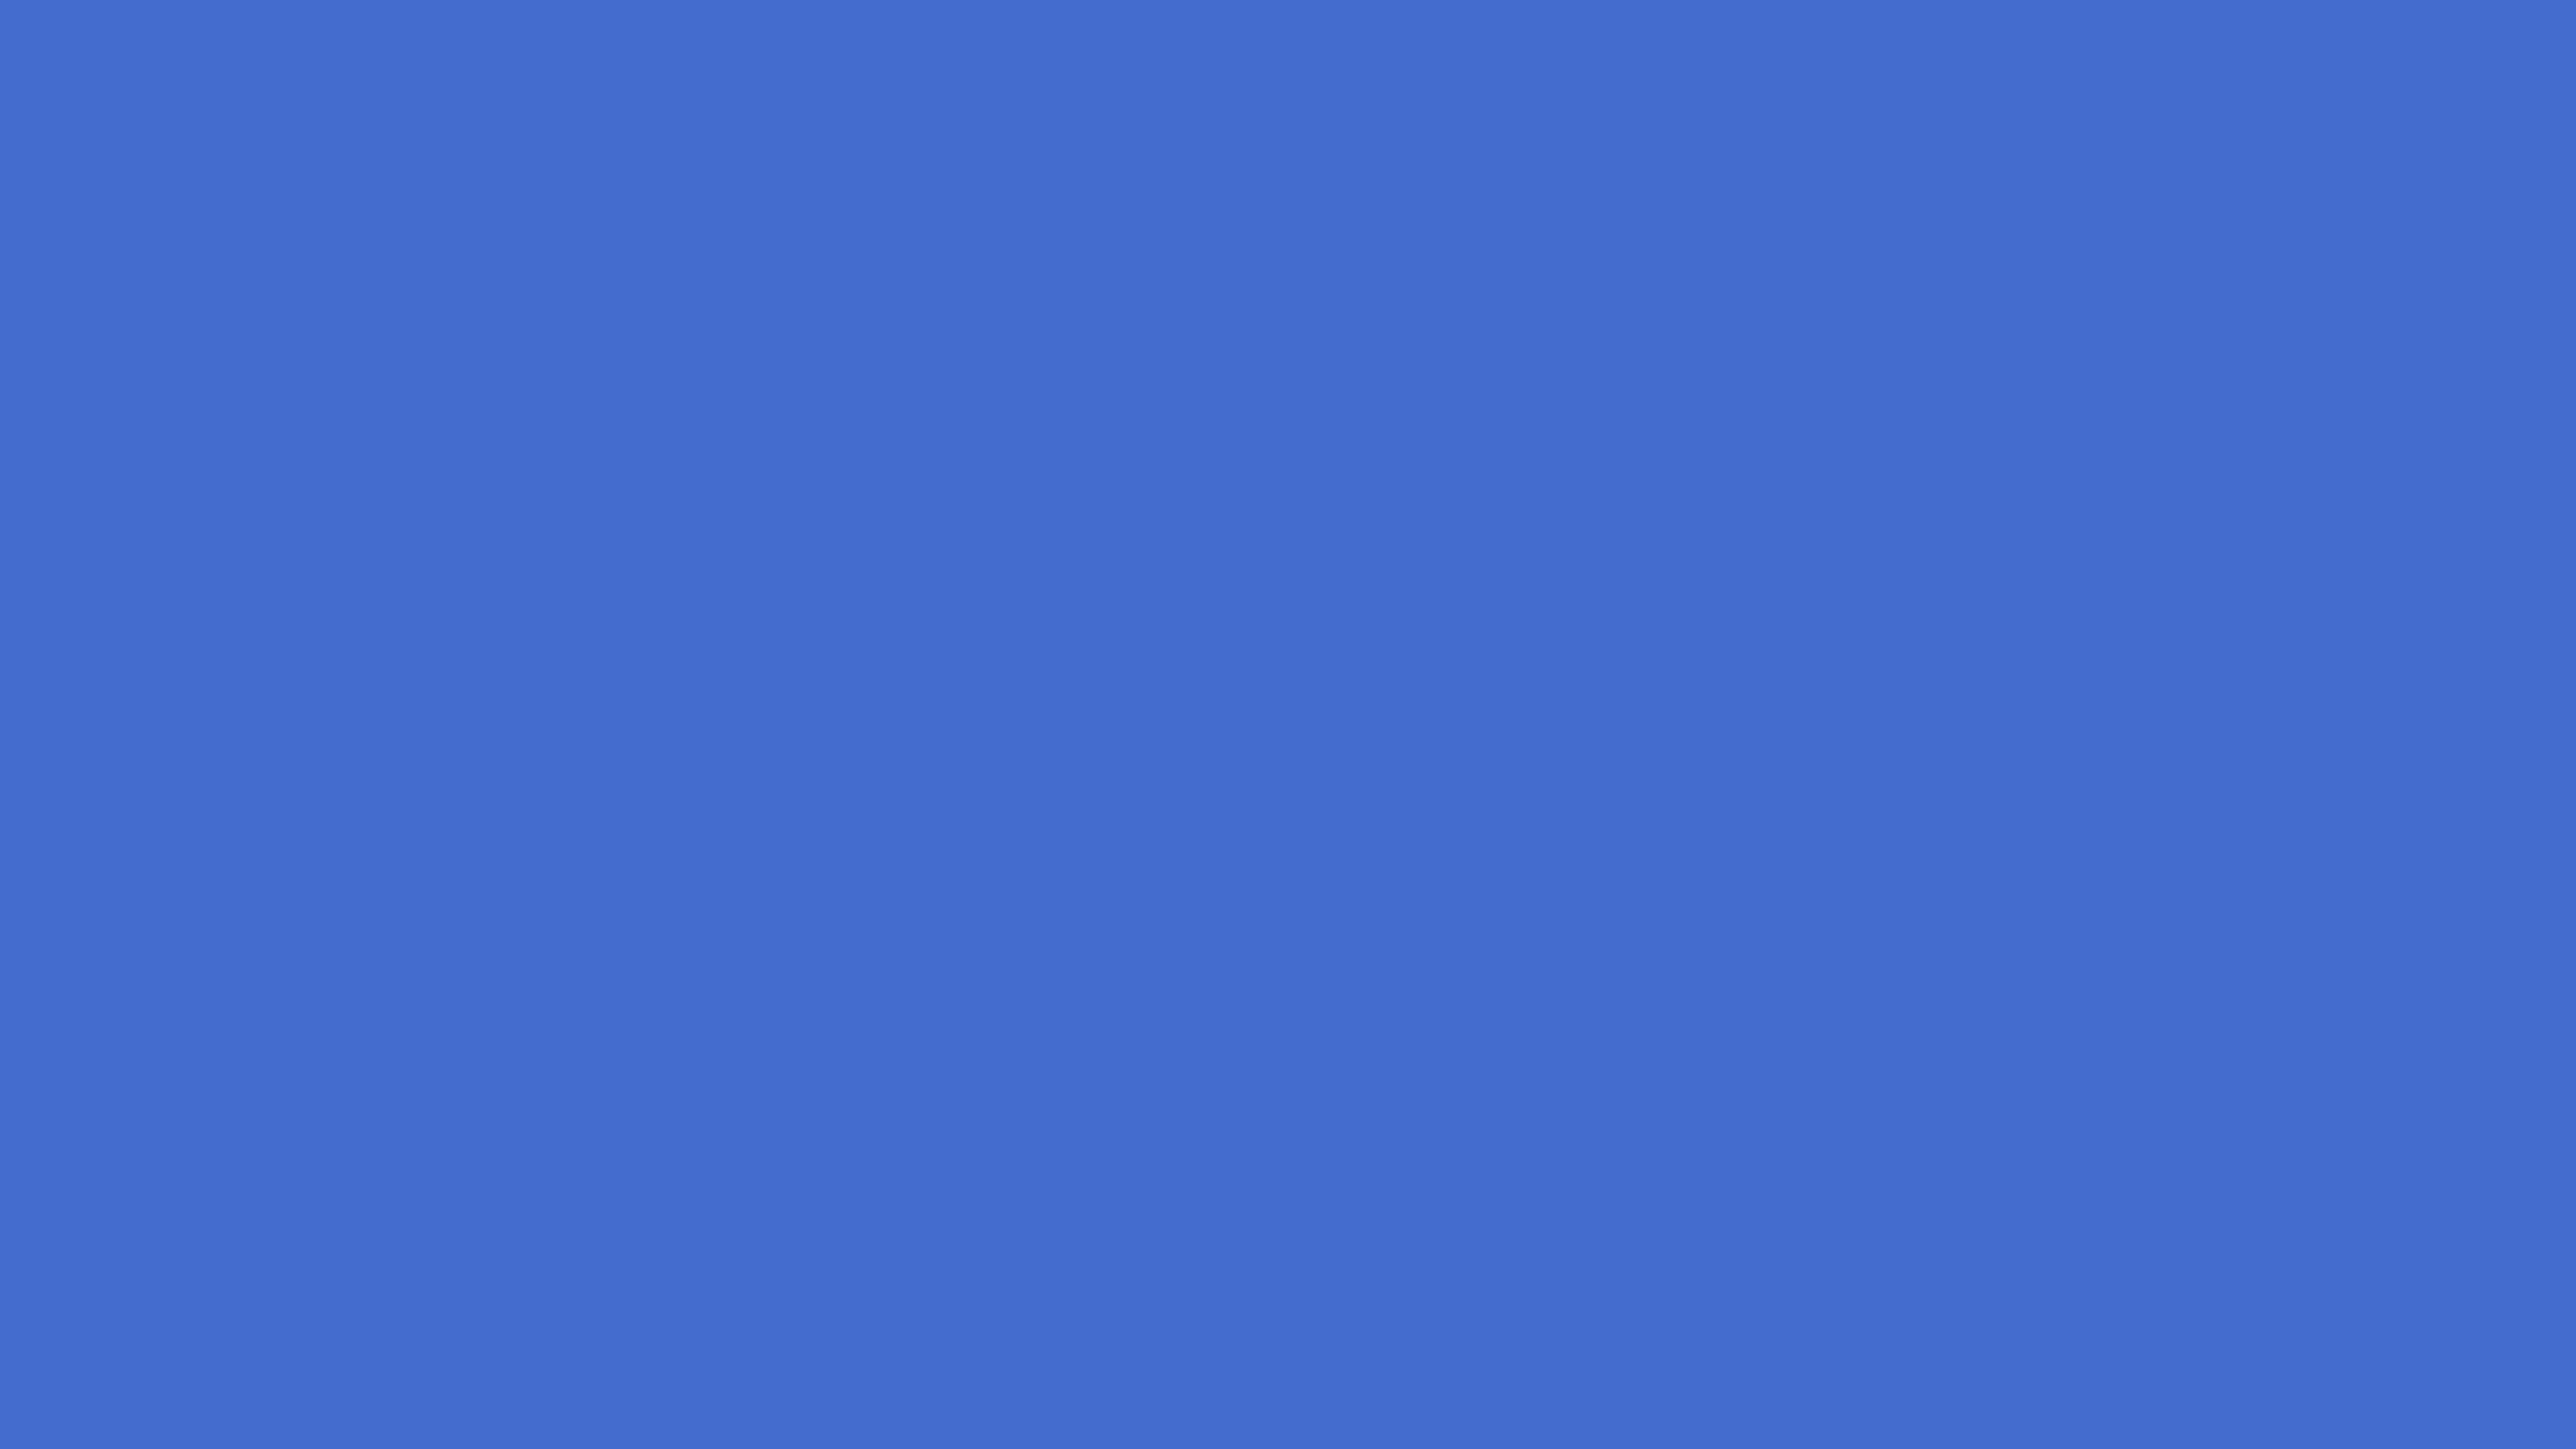 4096x2304 Han Blue Solid Color Background